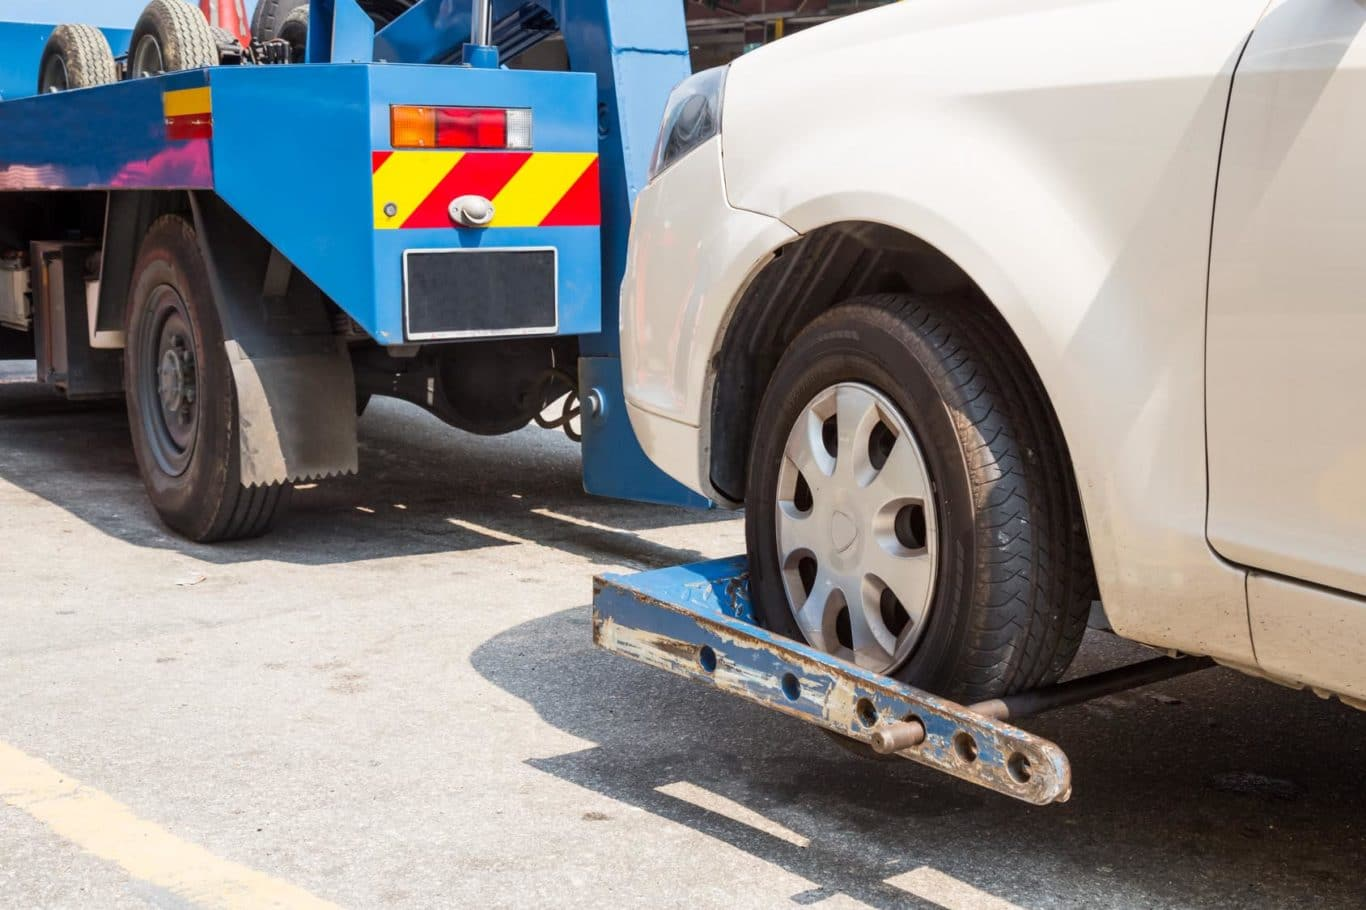 Santry expert Car Recovery services